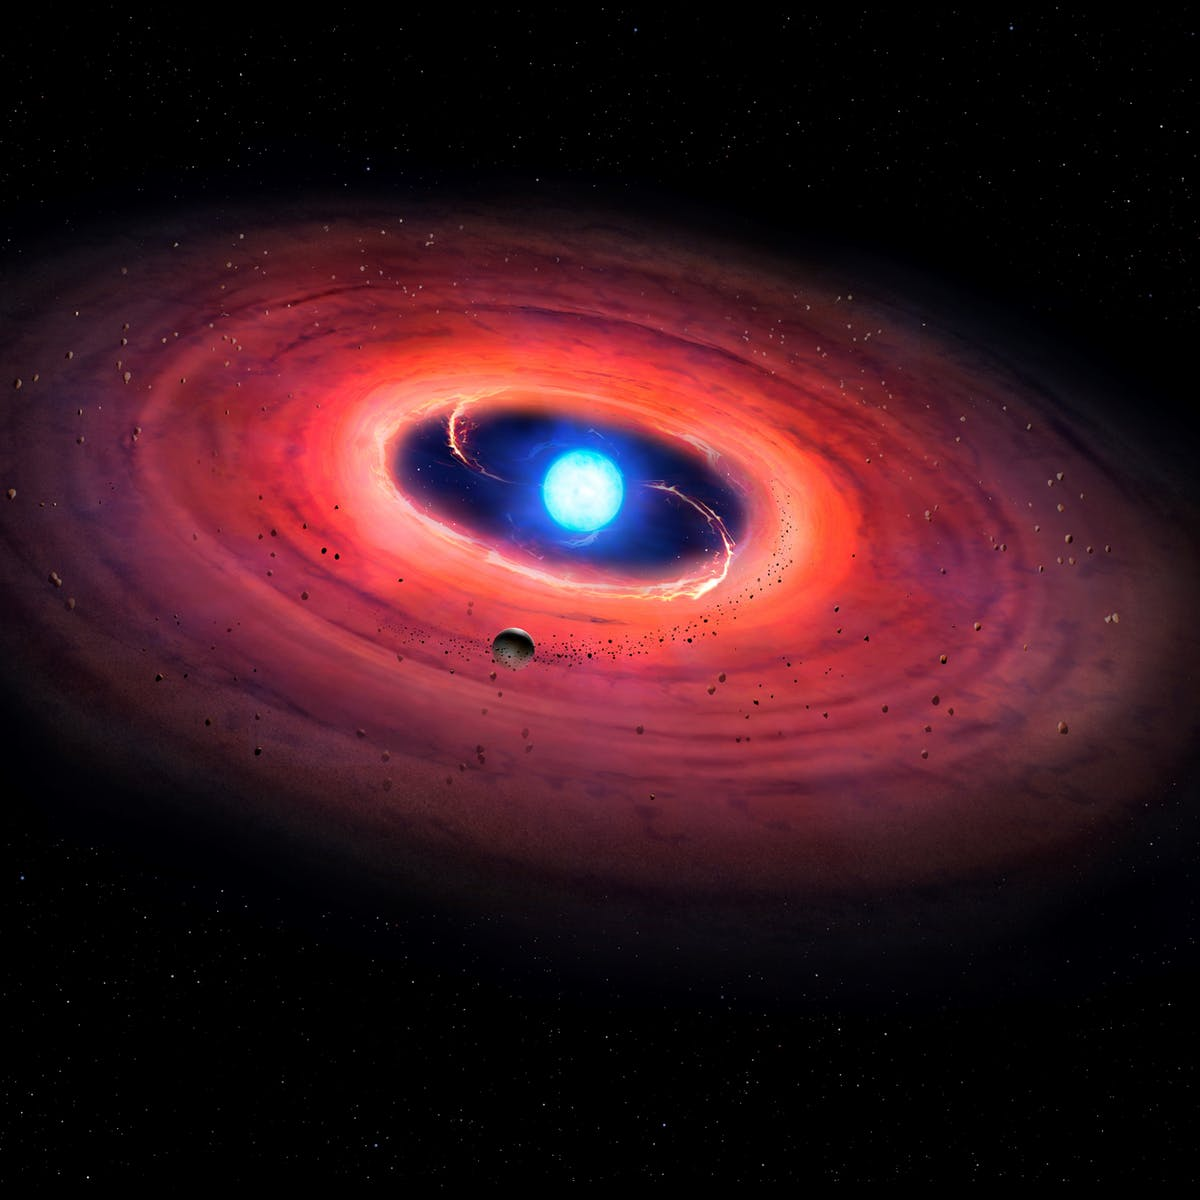 The autopsy of a dying star has revealed the potential for livable planets